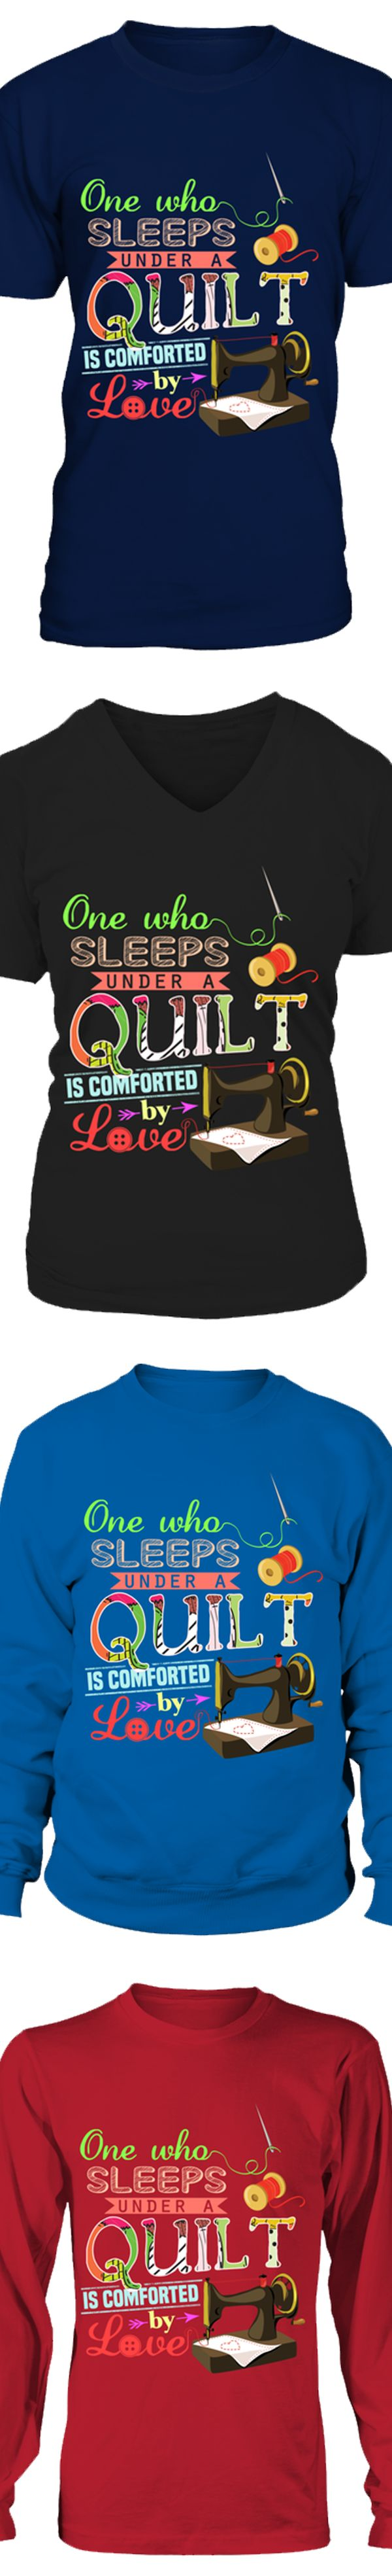 Design your own t-shirt for under $10 - One Who Sleeps Under A Quilt Is Comforted By Love Show Your Love